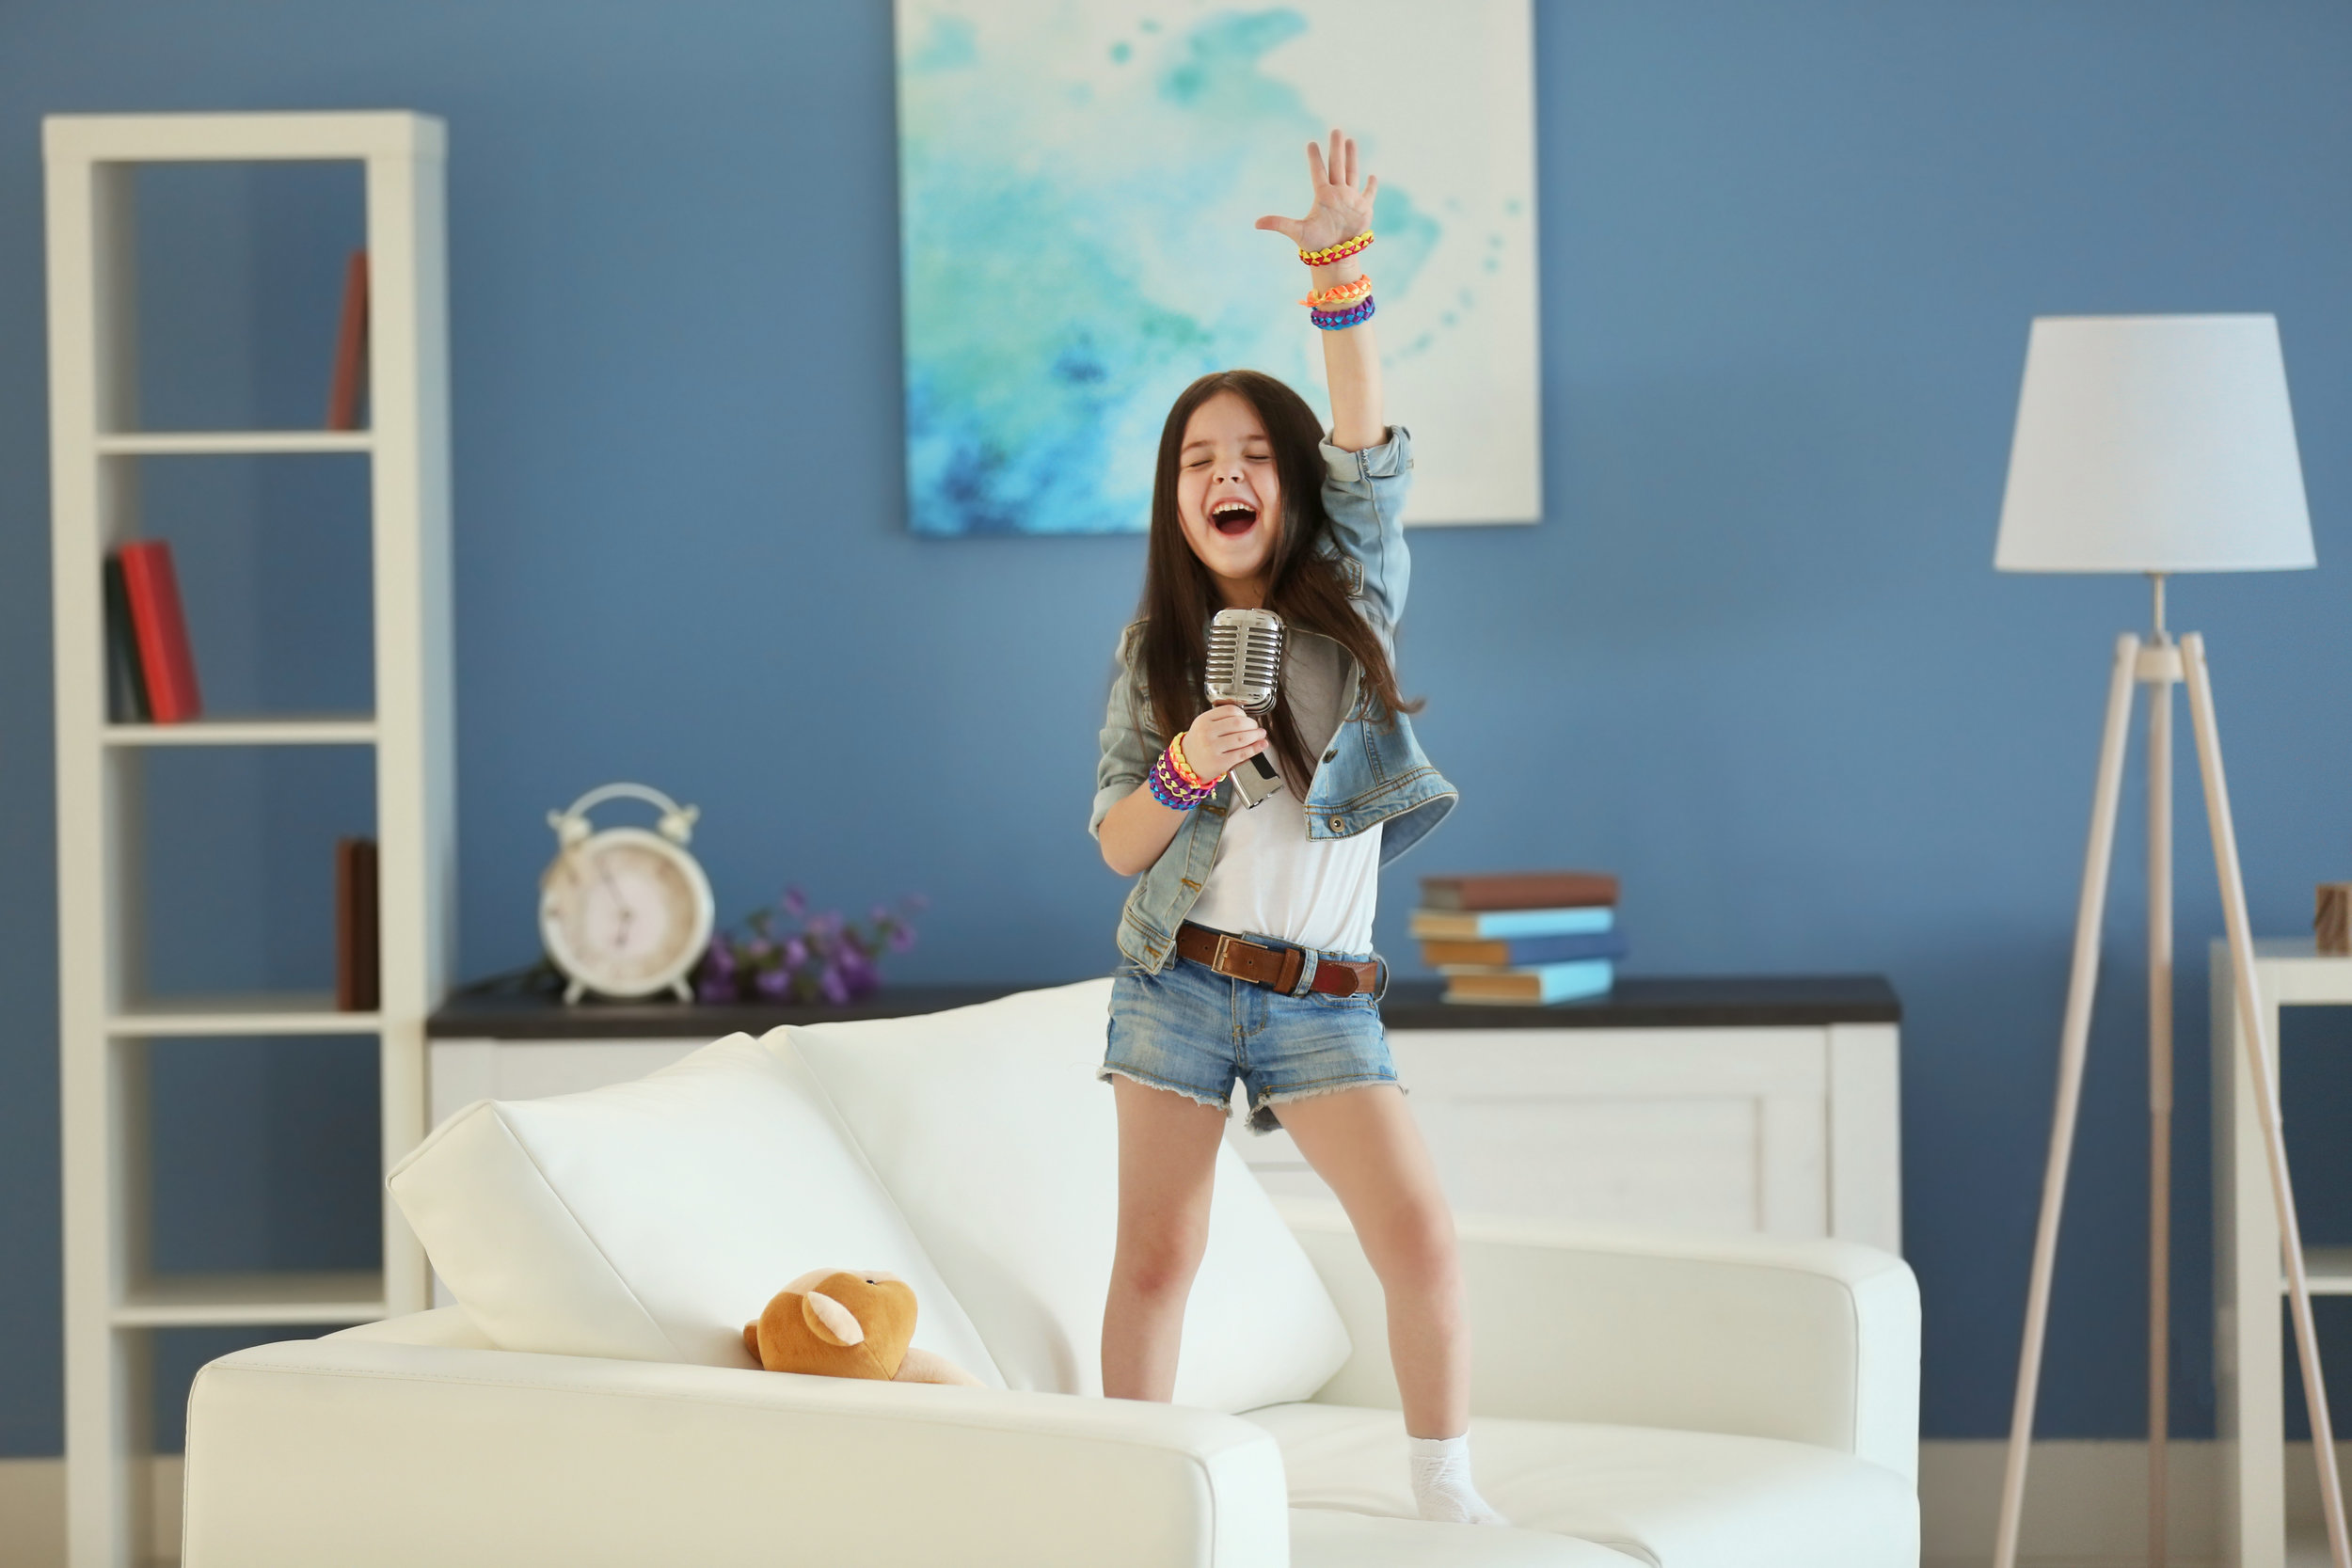 Artistic little girl singing in the room